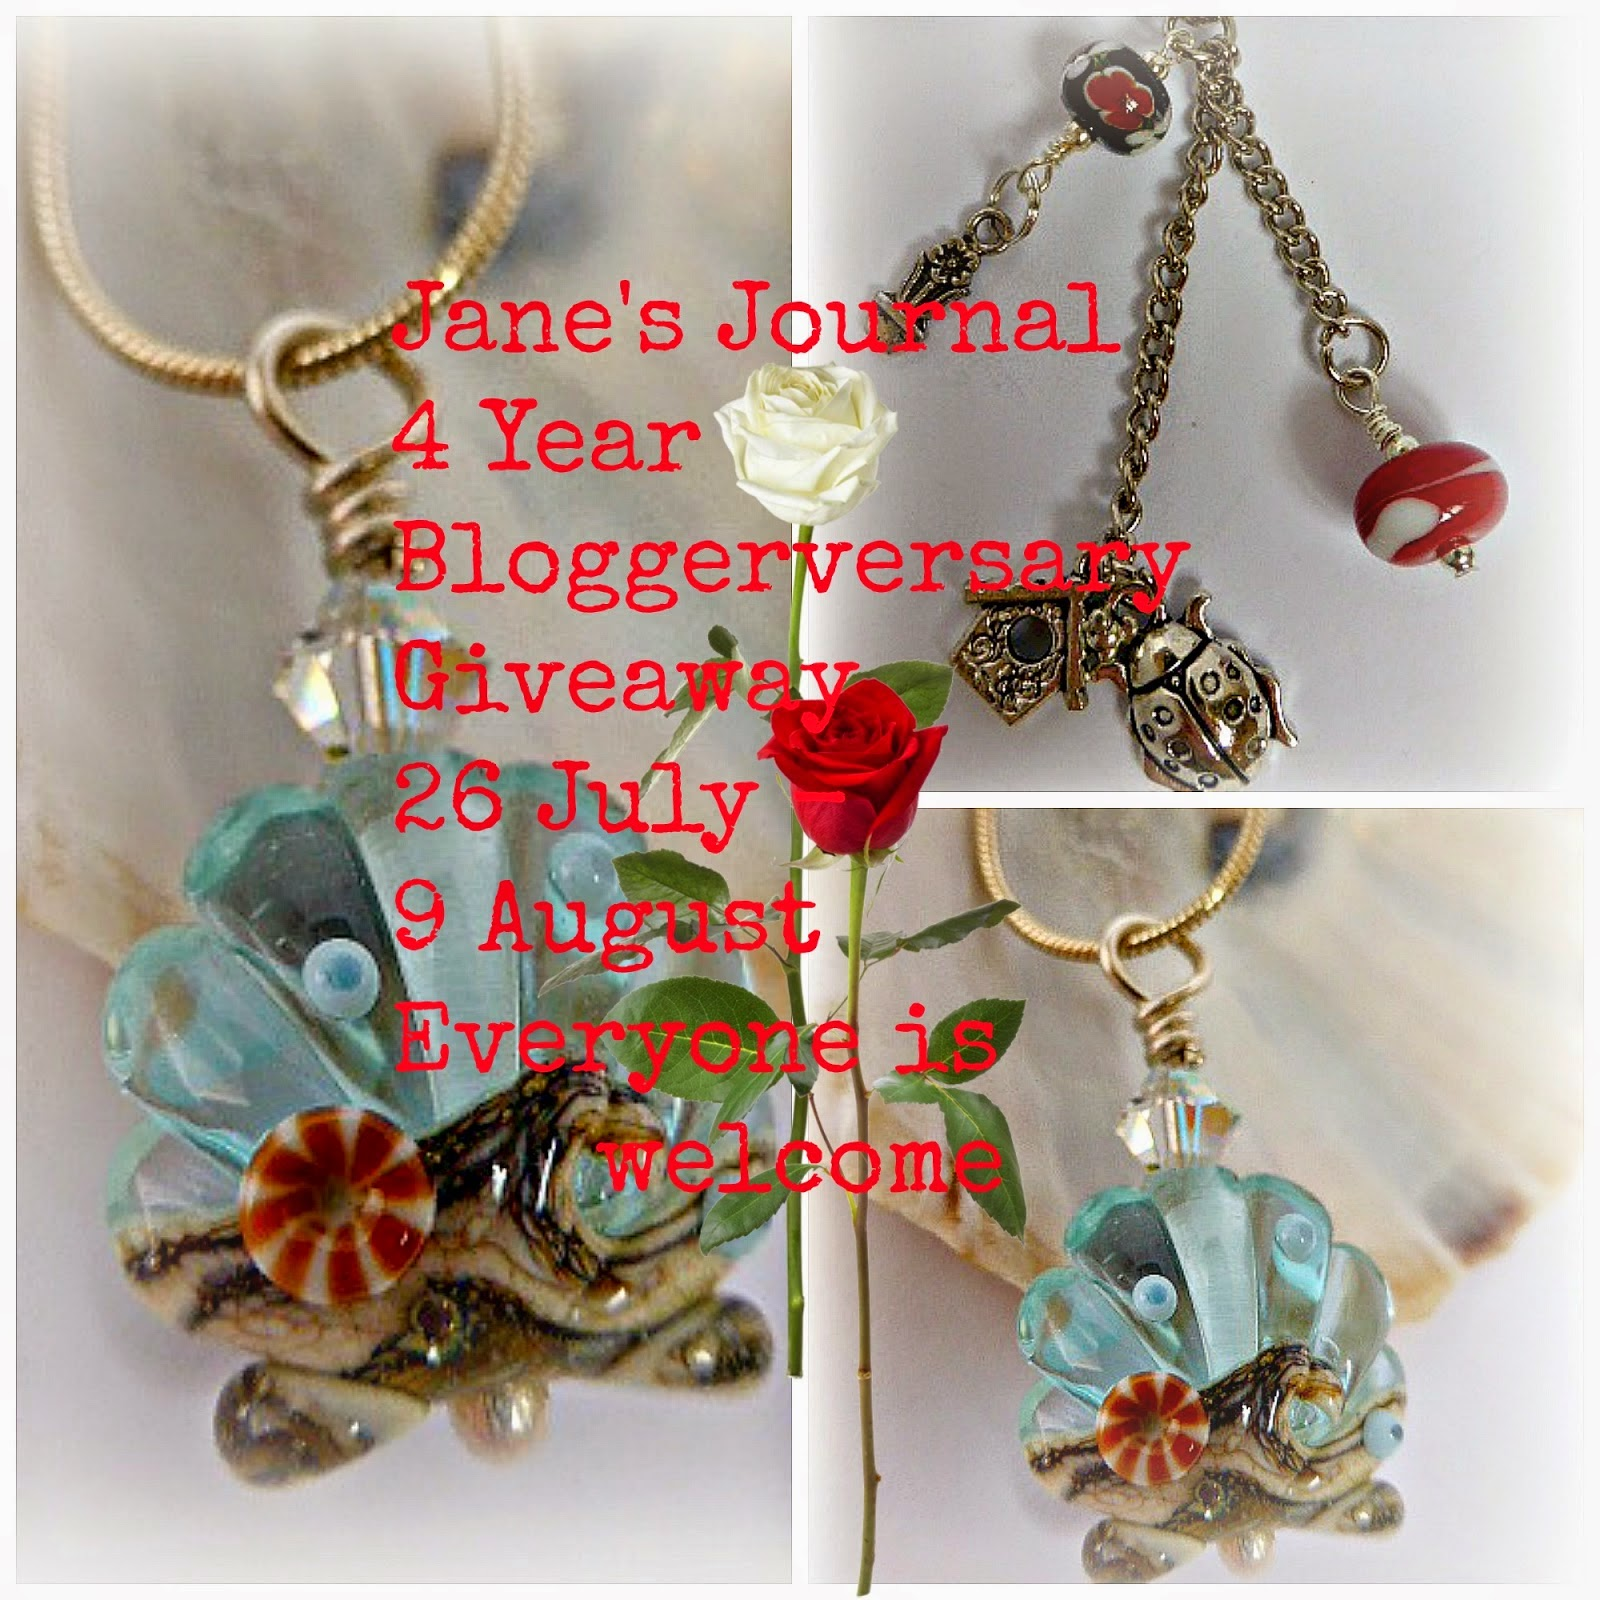 Jane's Journal 4 Years Blogging Giveaway